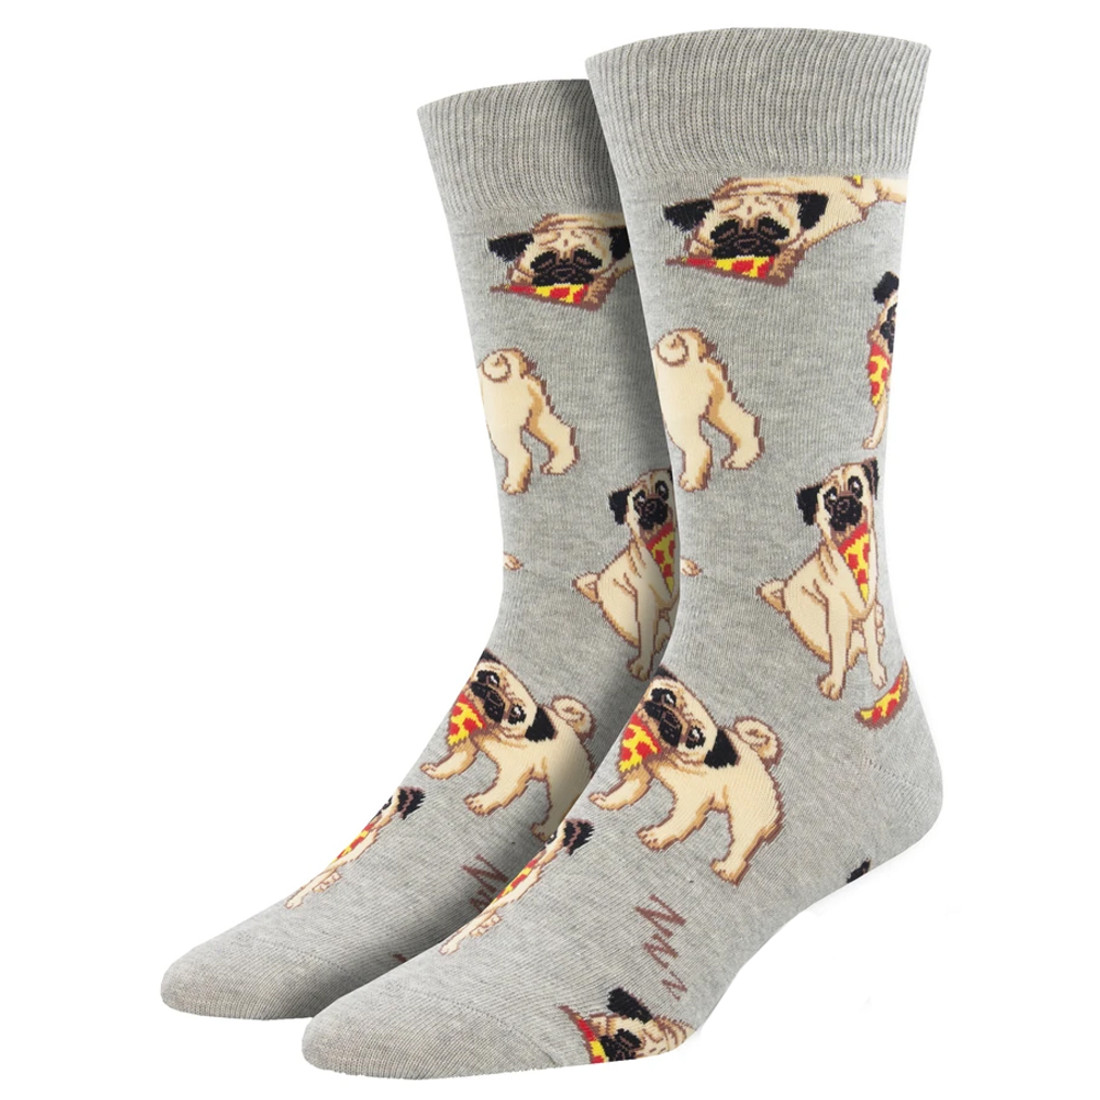 Pug Man's Best Friends Men's Crew Socks